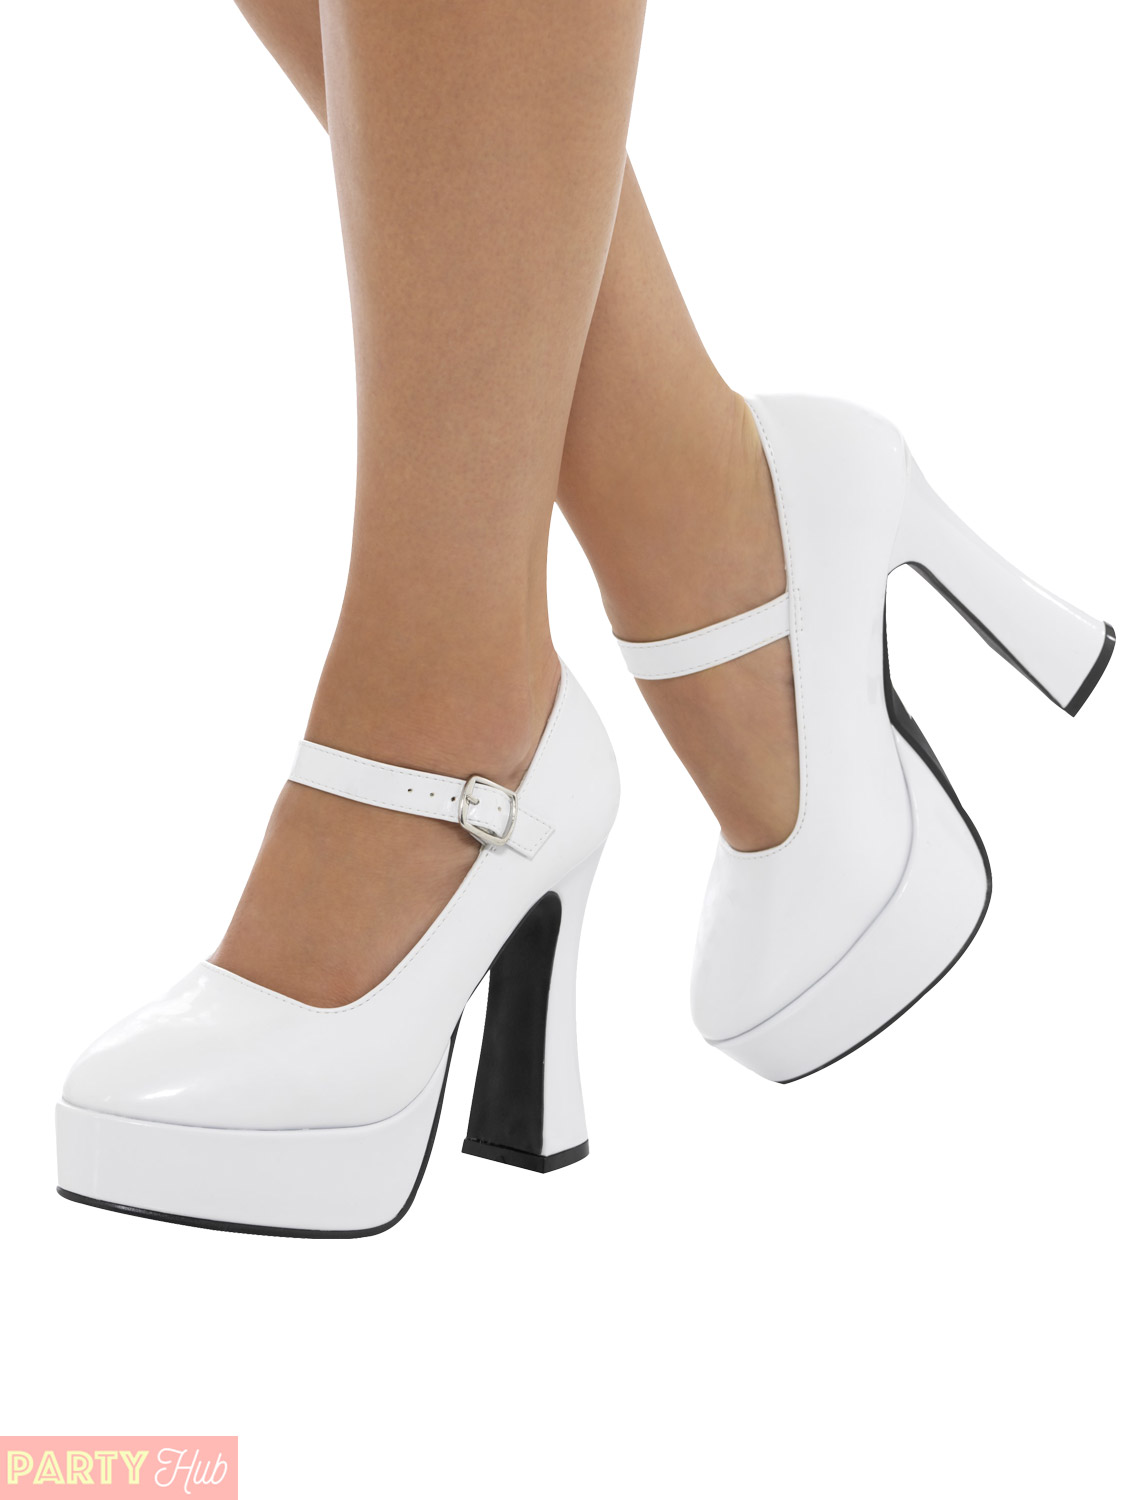 1970s Ladies Platform Shoes Retro Disco Fancy Dress Accessory UK ...